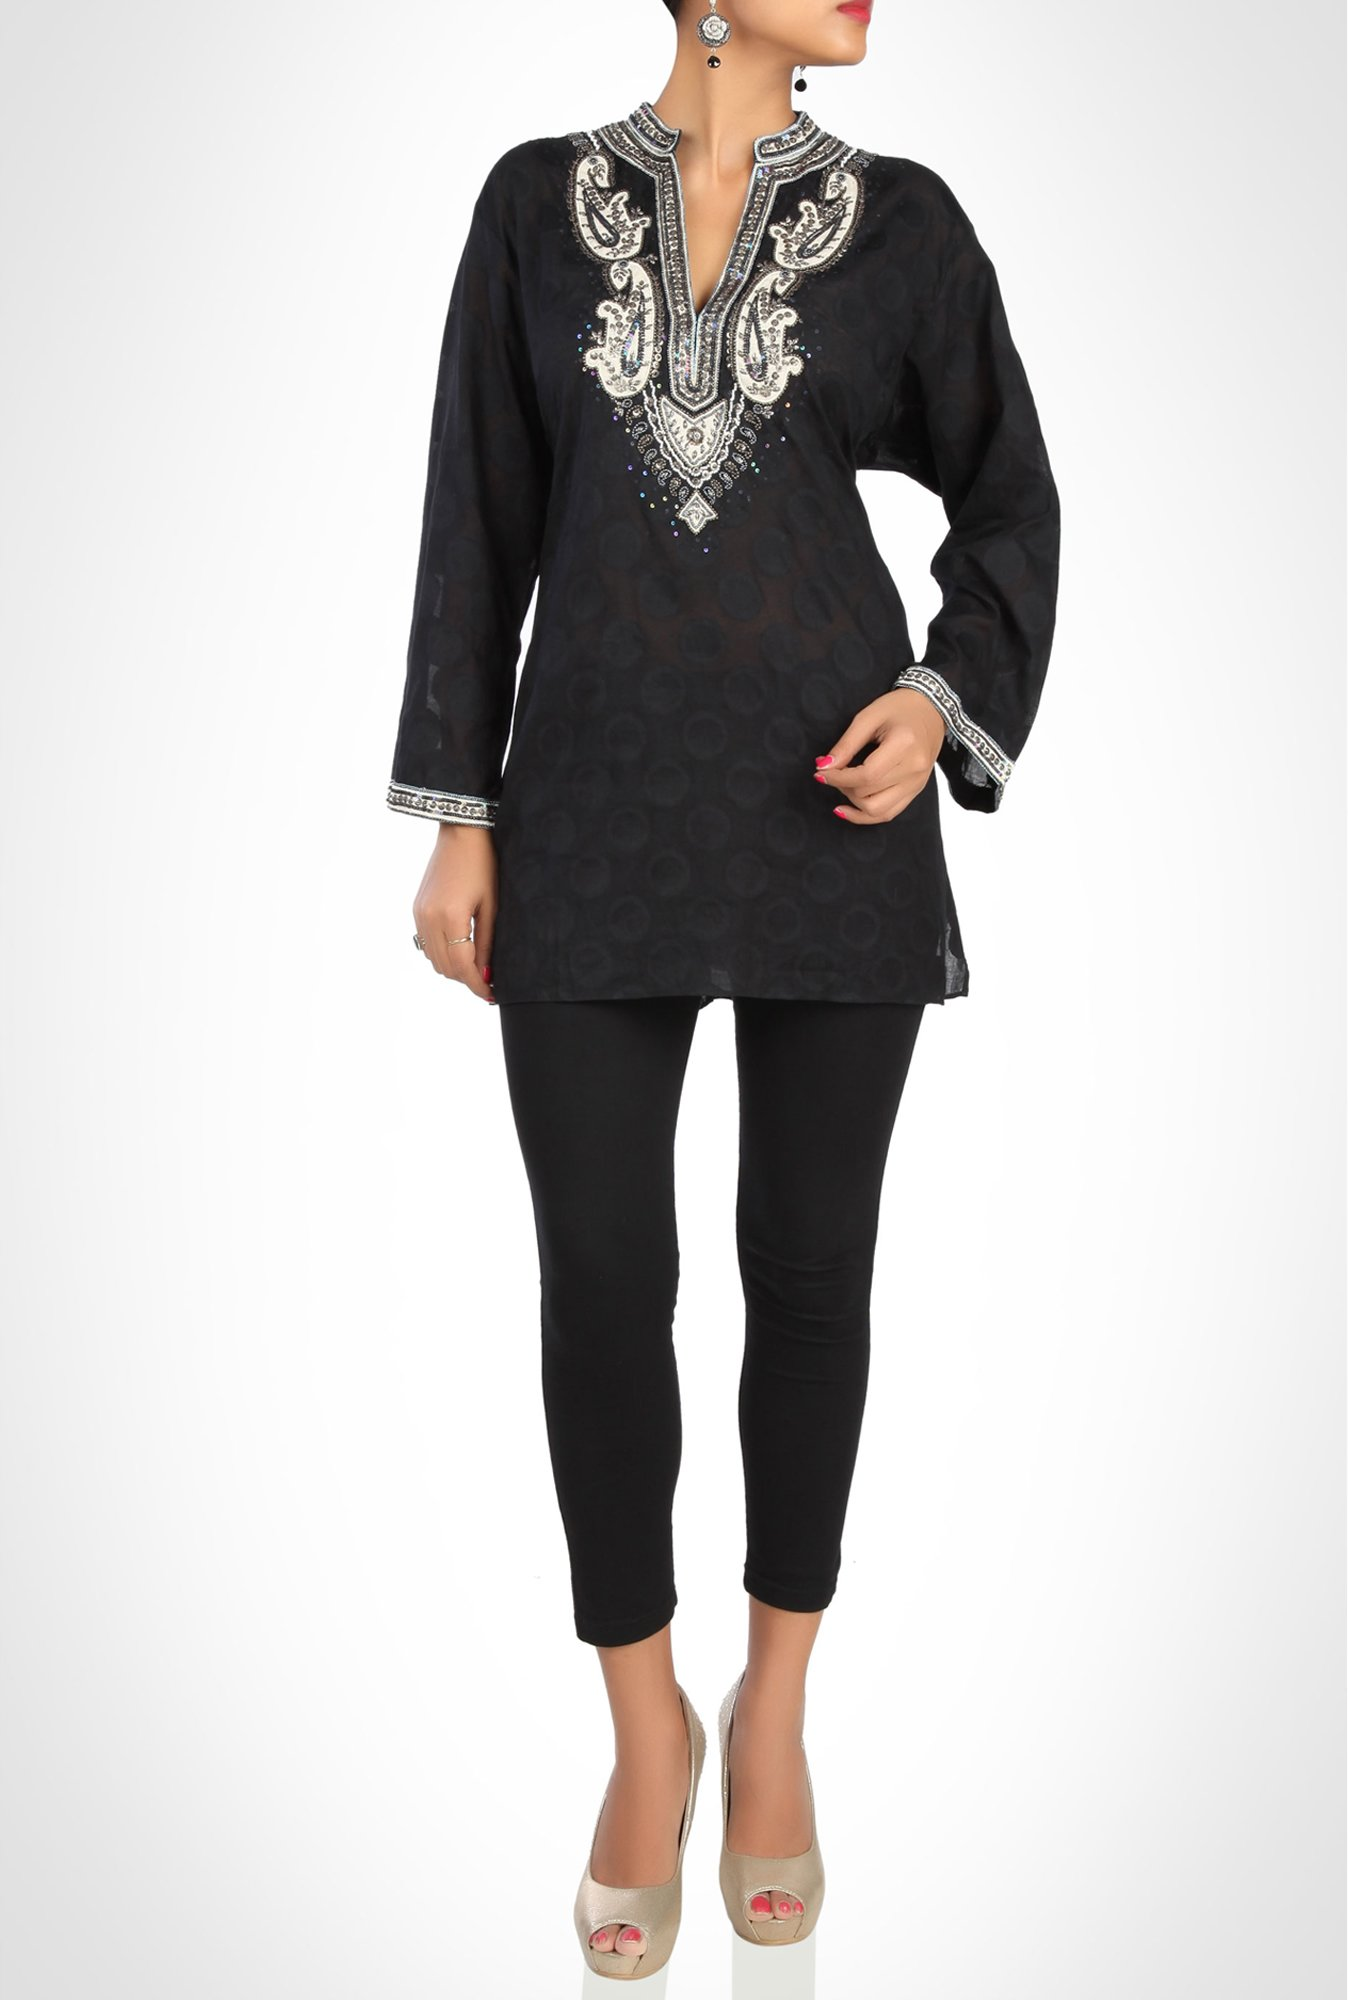 Sulu Designer Wear Black Embroidered Kurti By Kimaya